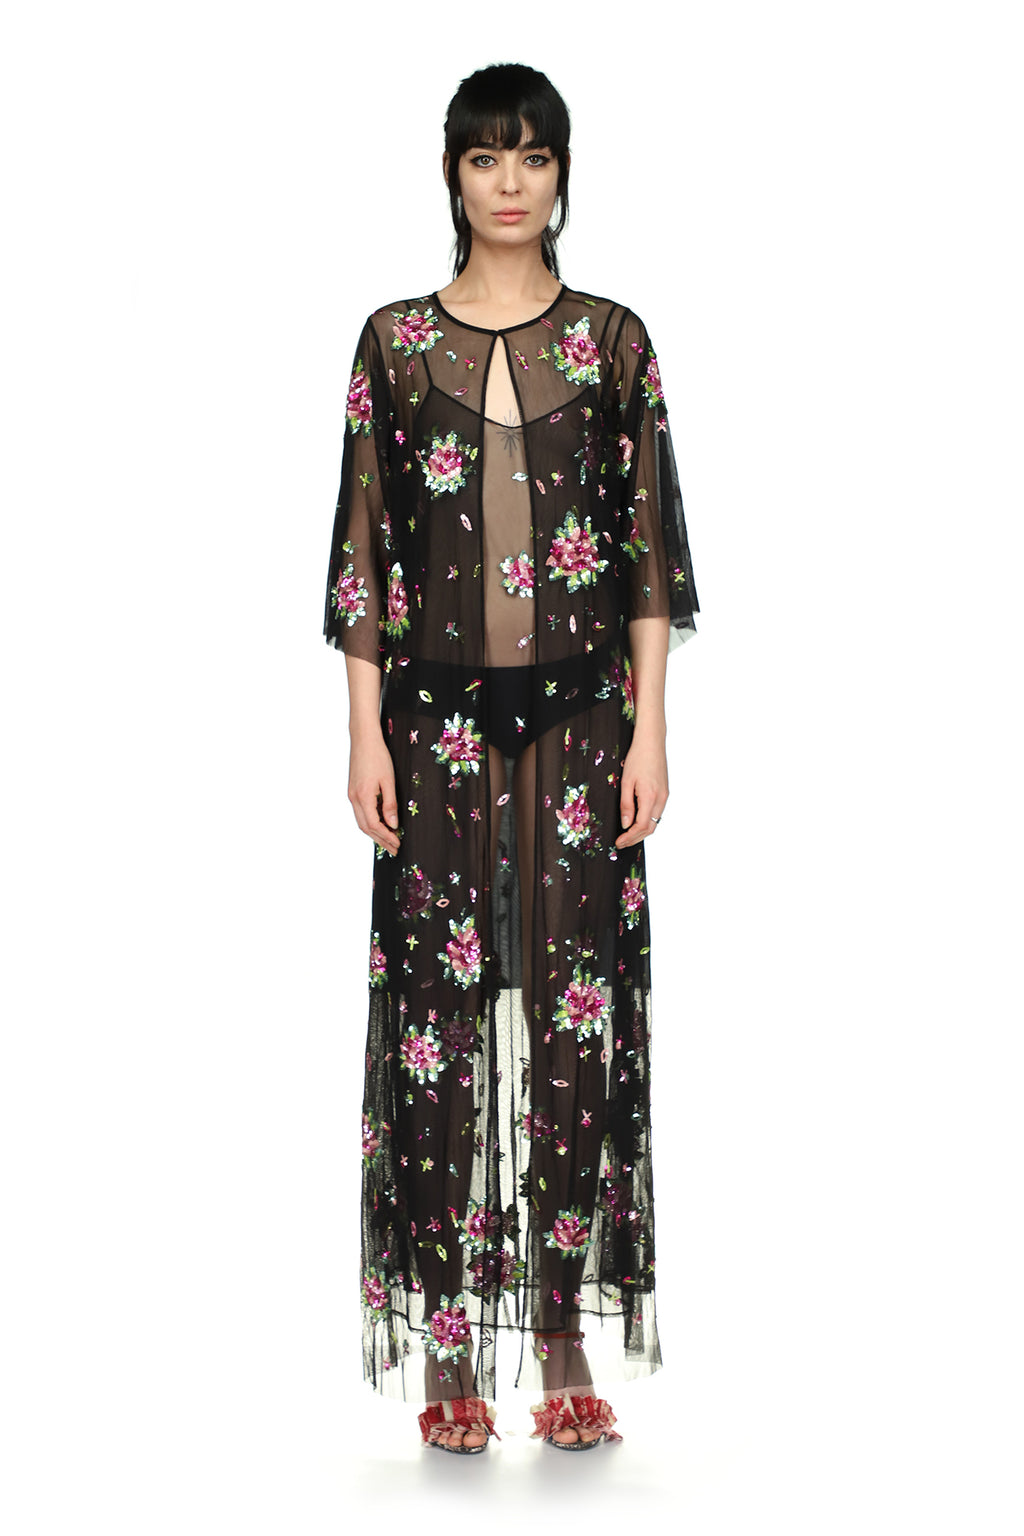 Tulle Floral Floor Length Robe - Spring 2021 - Libertine